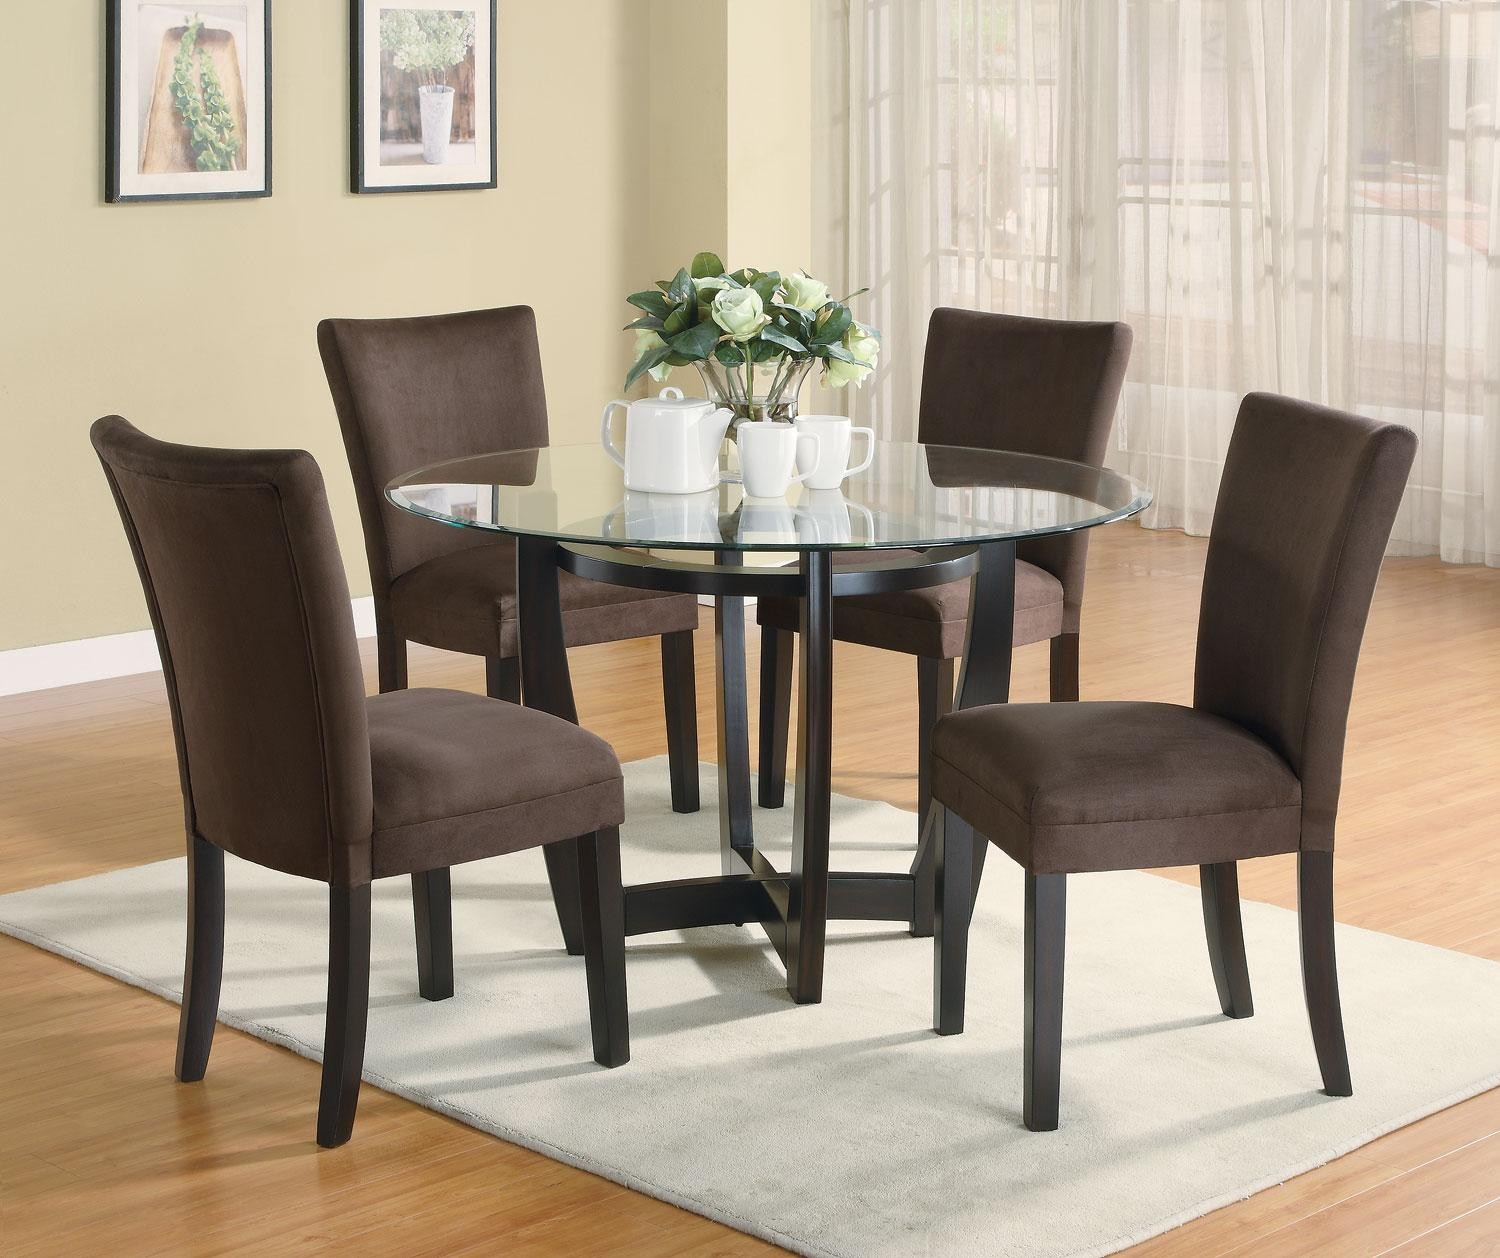 Dining Room Sets Round: Bloomfield Cappuccino Round Dining Room Set From Coaster